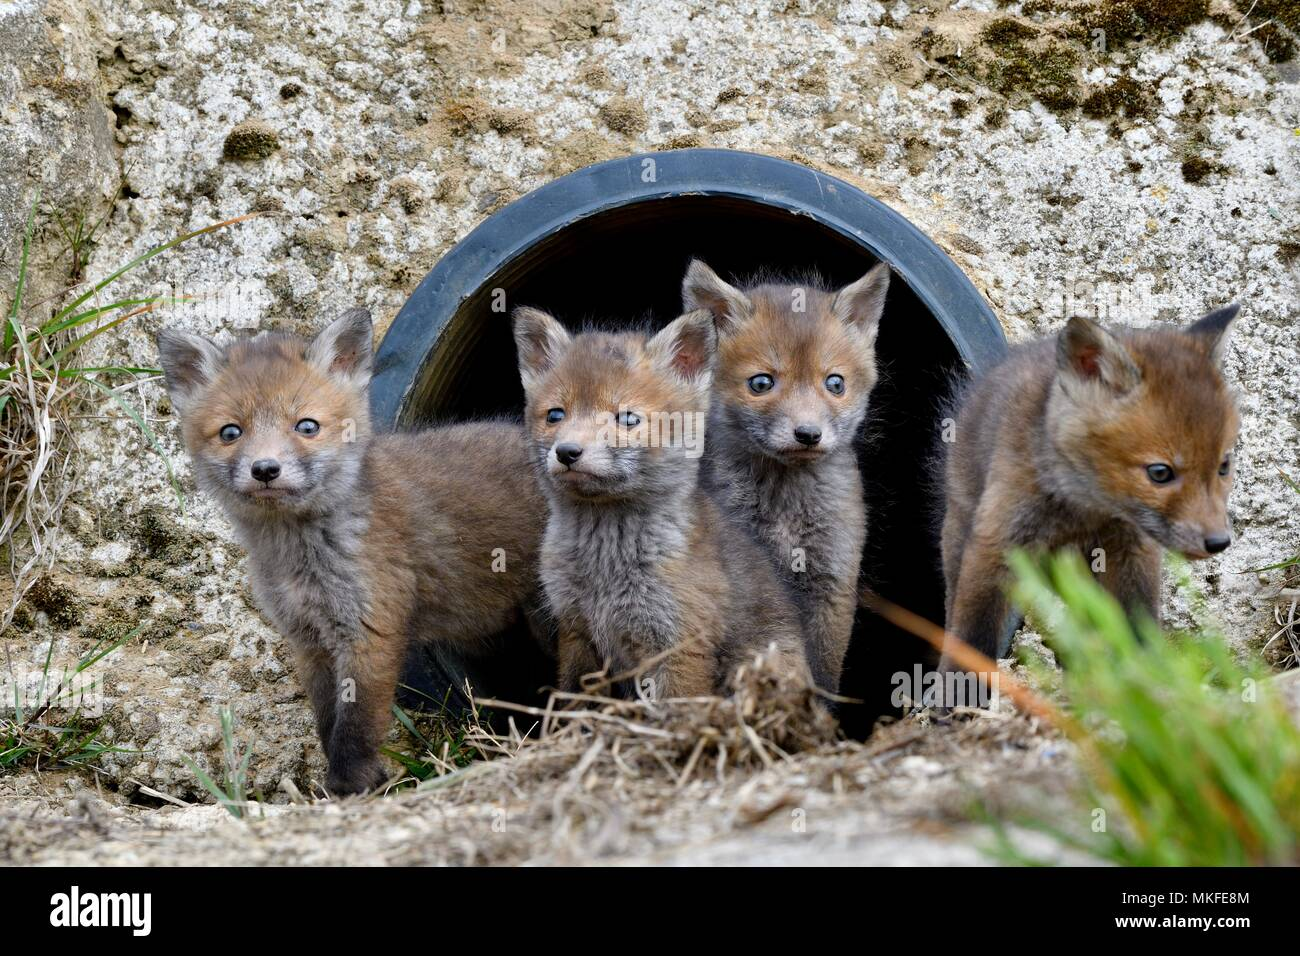 Red fox (Vulpes vulpes) youngs in a rainwater pipe collector, Doubs, Franche-Comte, France - Stock Image